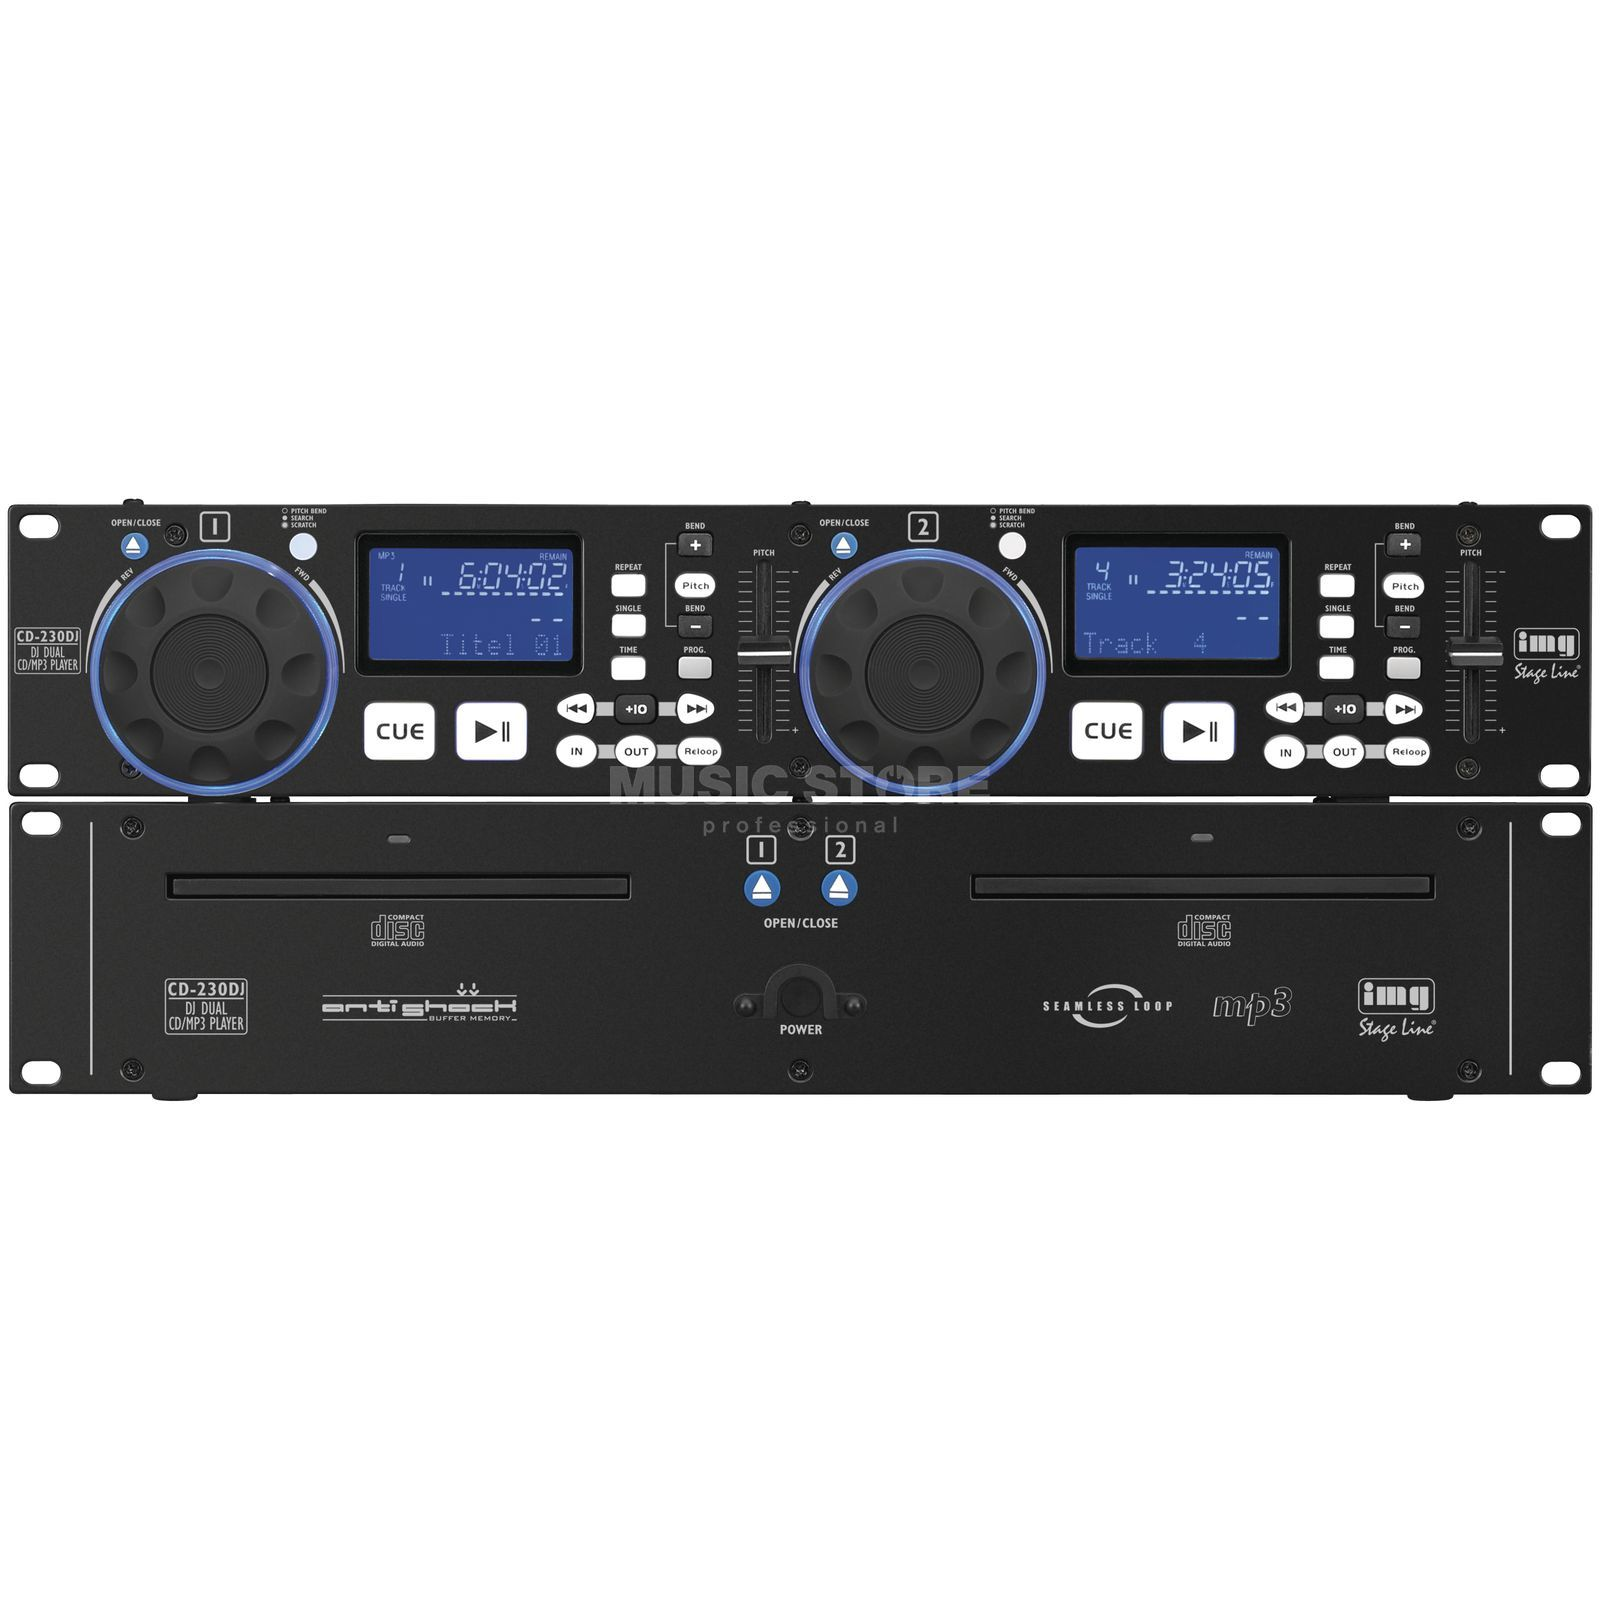 IMG STAGELINE CD-230DJ DJ-Dual-CD-/MP3-Player Immagine prodotto